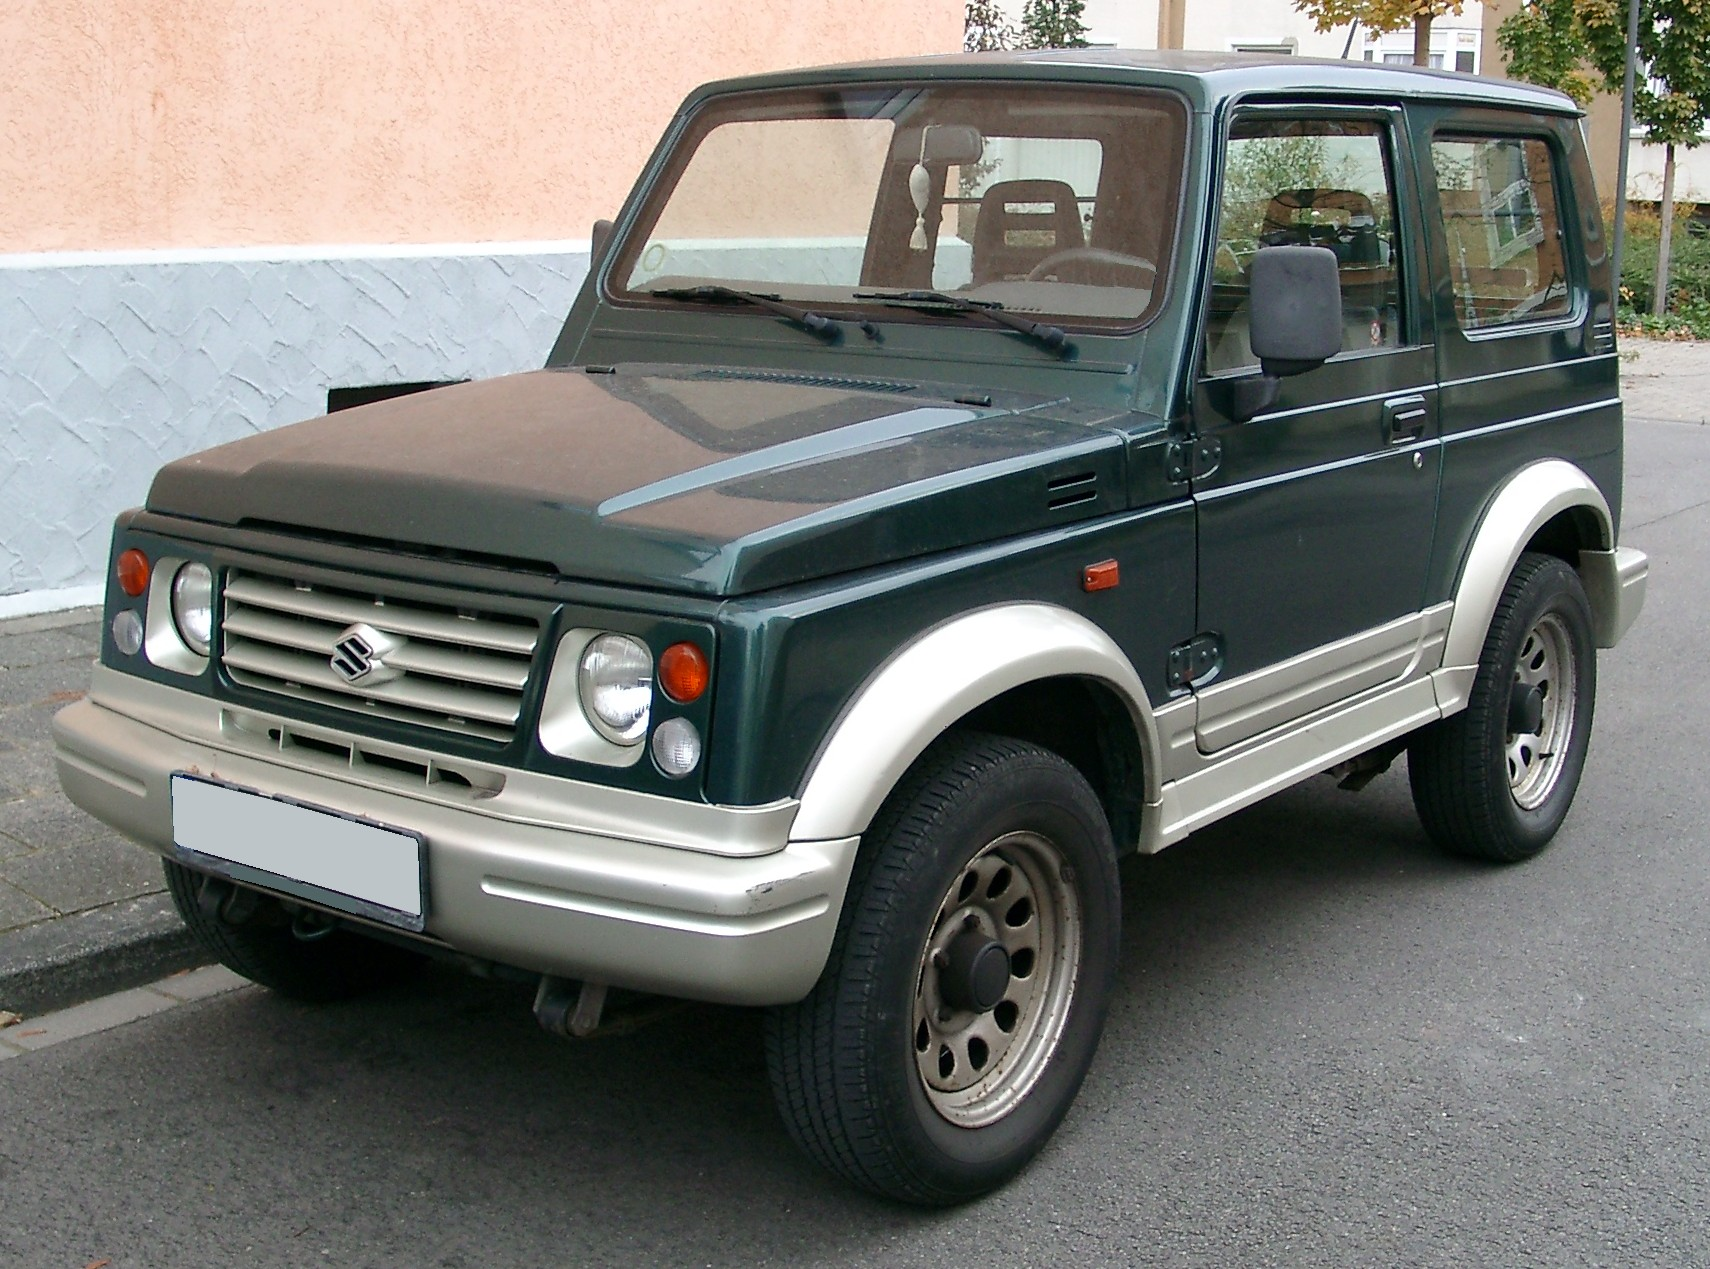 Suzuki Samurai   All Cars in The World